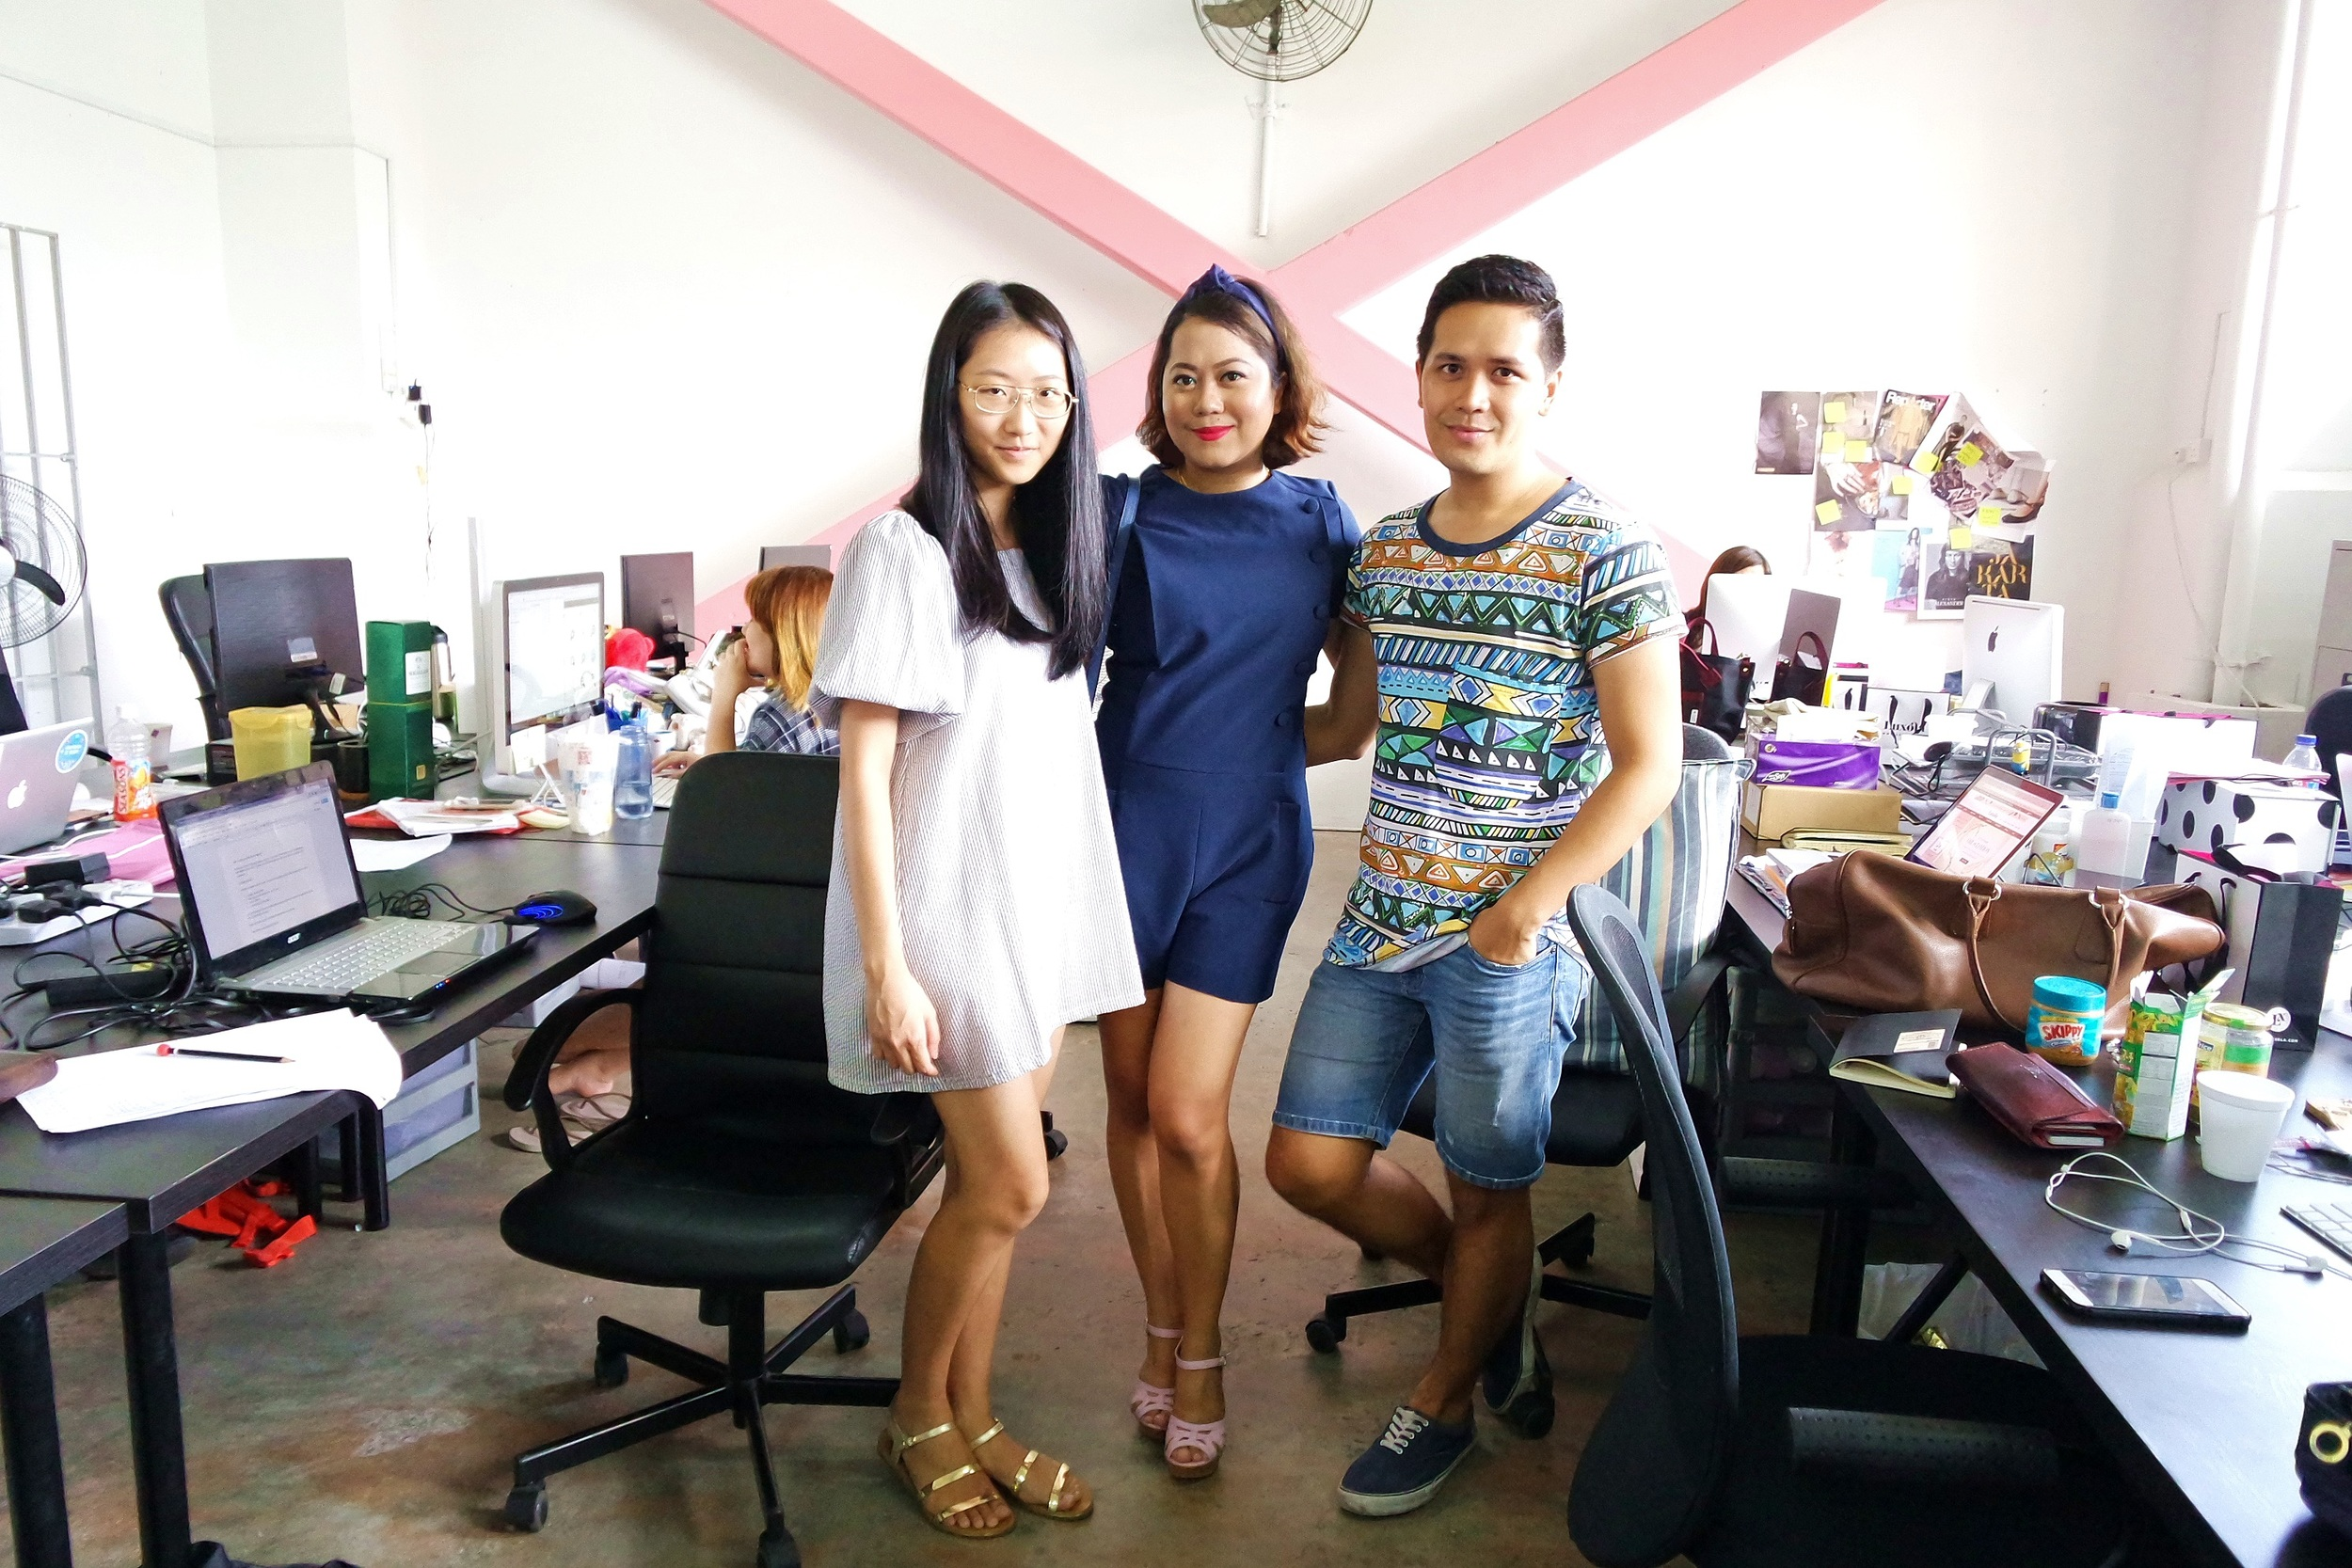 New friends: Weina Leong, who toured me around the HQ, and Paul Dela Merced, who is the Editor-In-Chief of LX Edit.